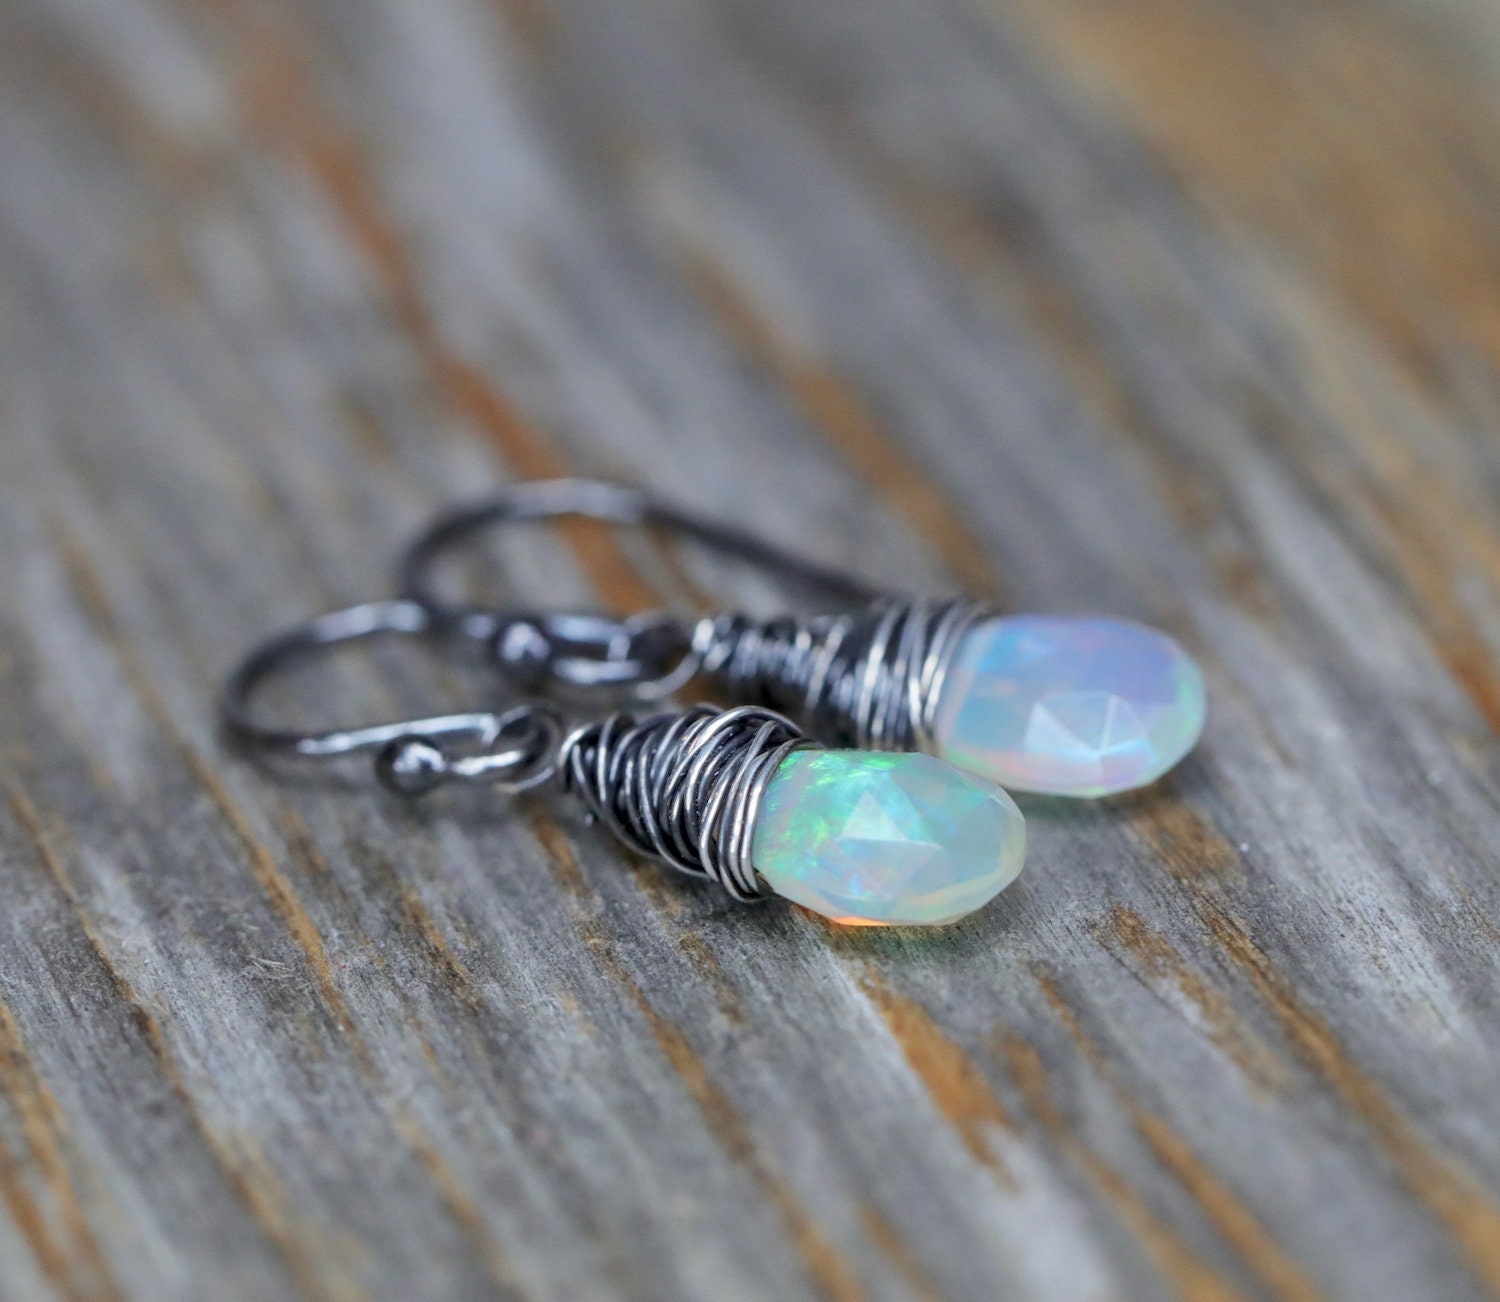 Opal Earring Faceted White Drop October Birthstone Birthday Gift For Her Ethiopian Sterling Silver Oxidized